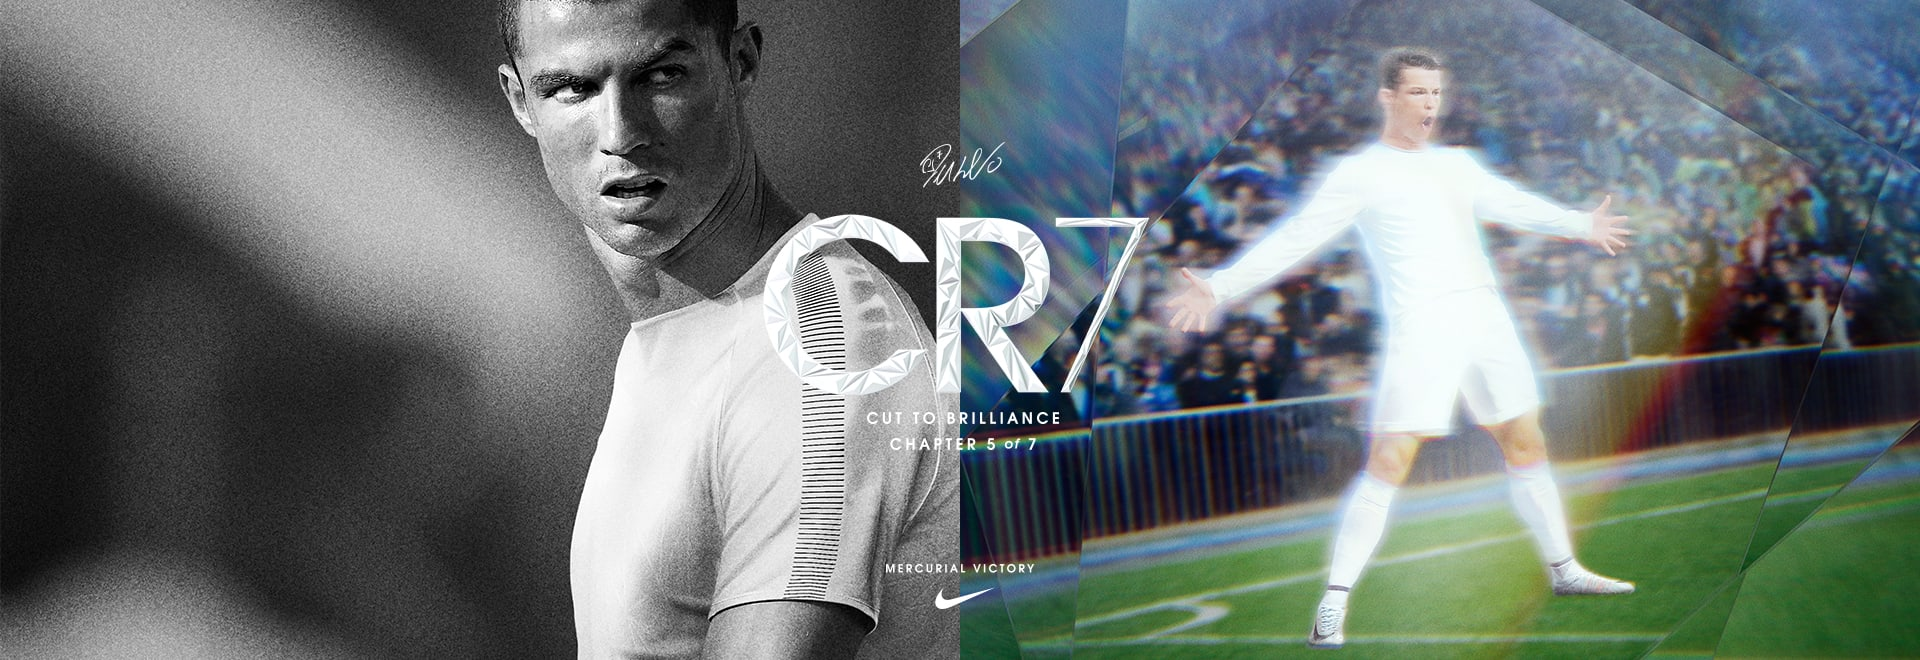 nike-cr7-cut-to-brilliance